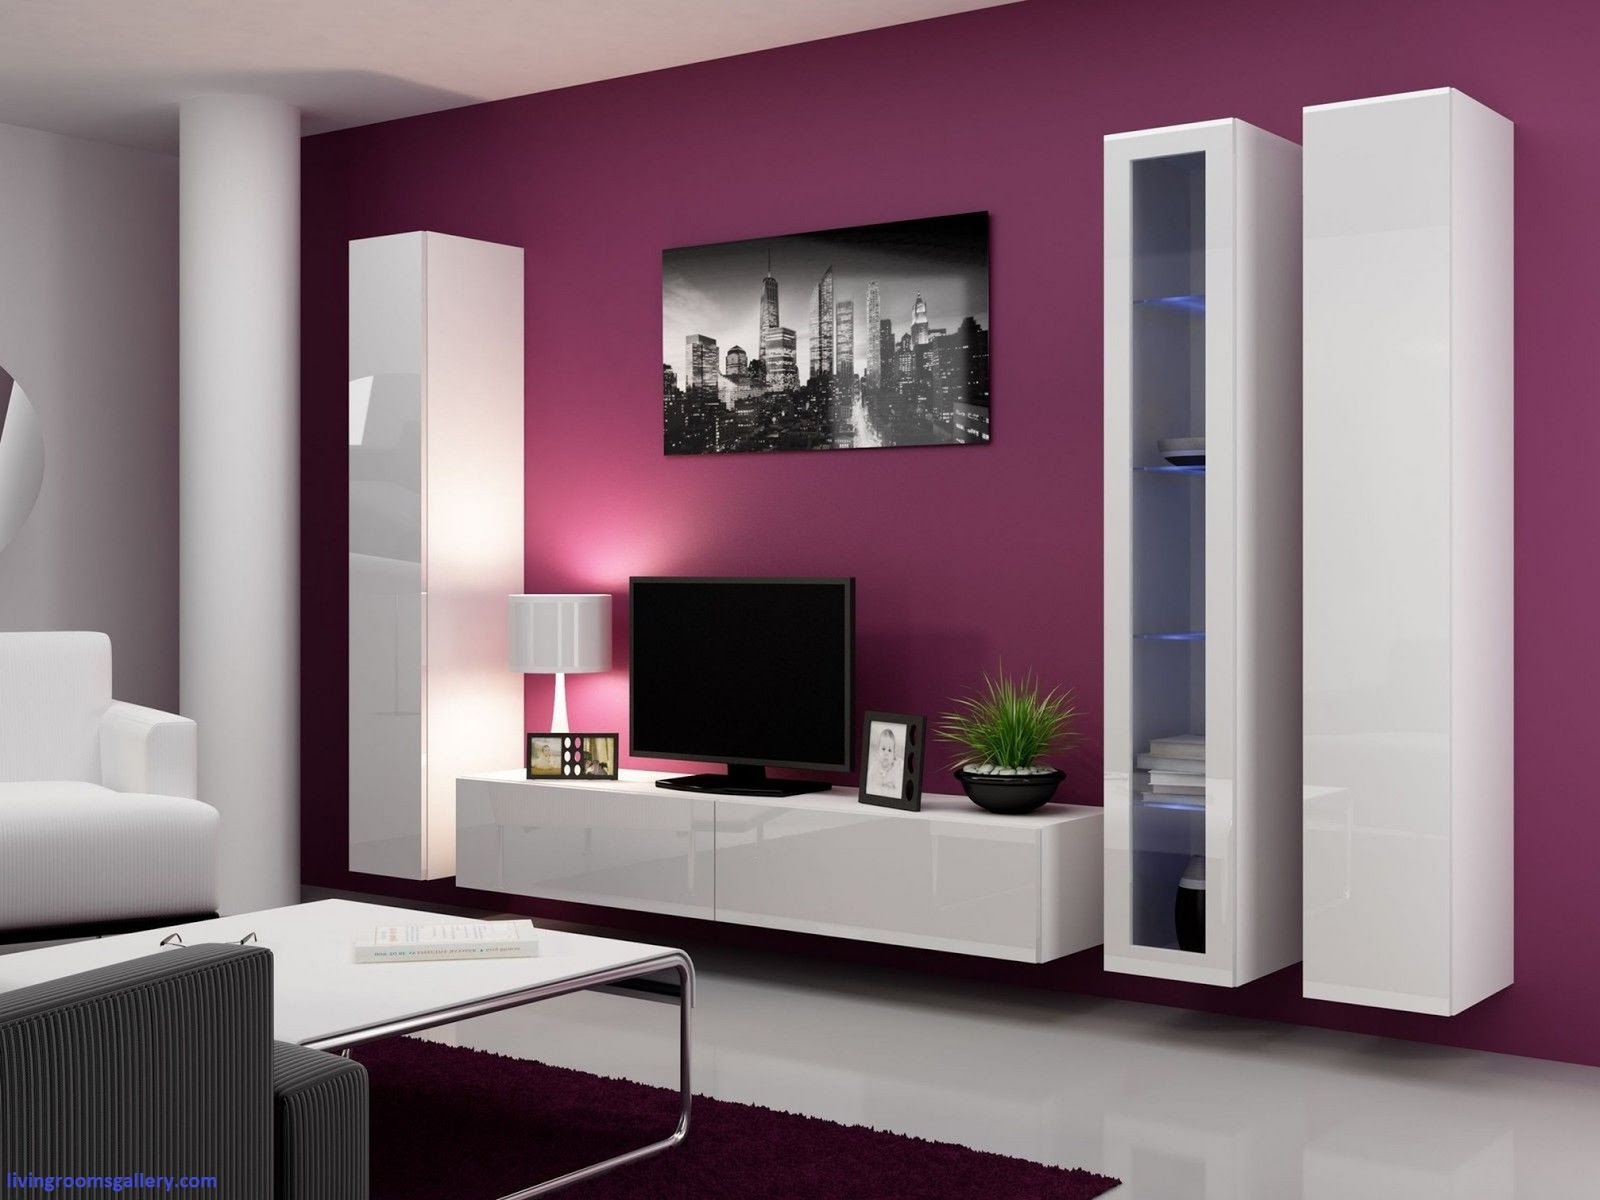 Modern luxurious cupboard designs in living room 2016 Interior design tv wall units